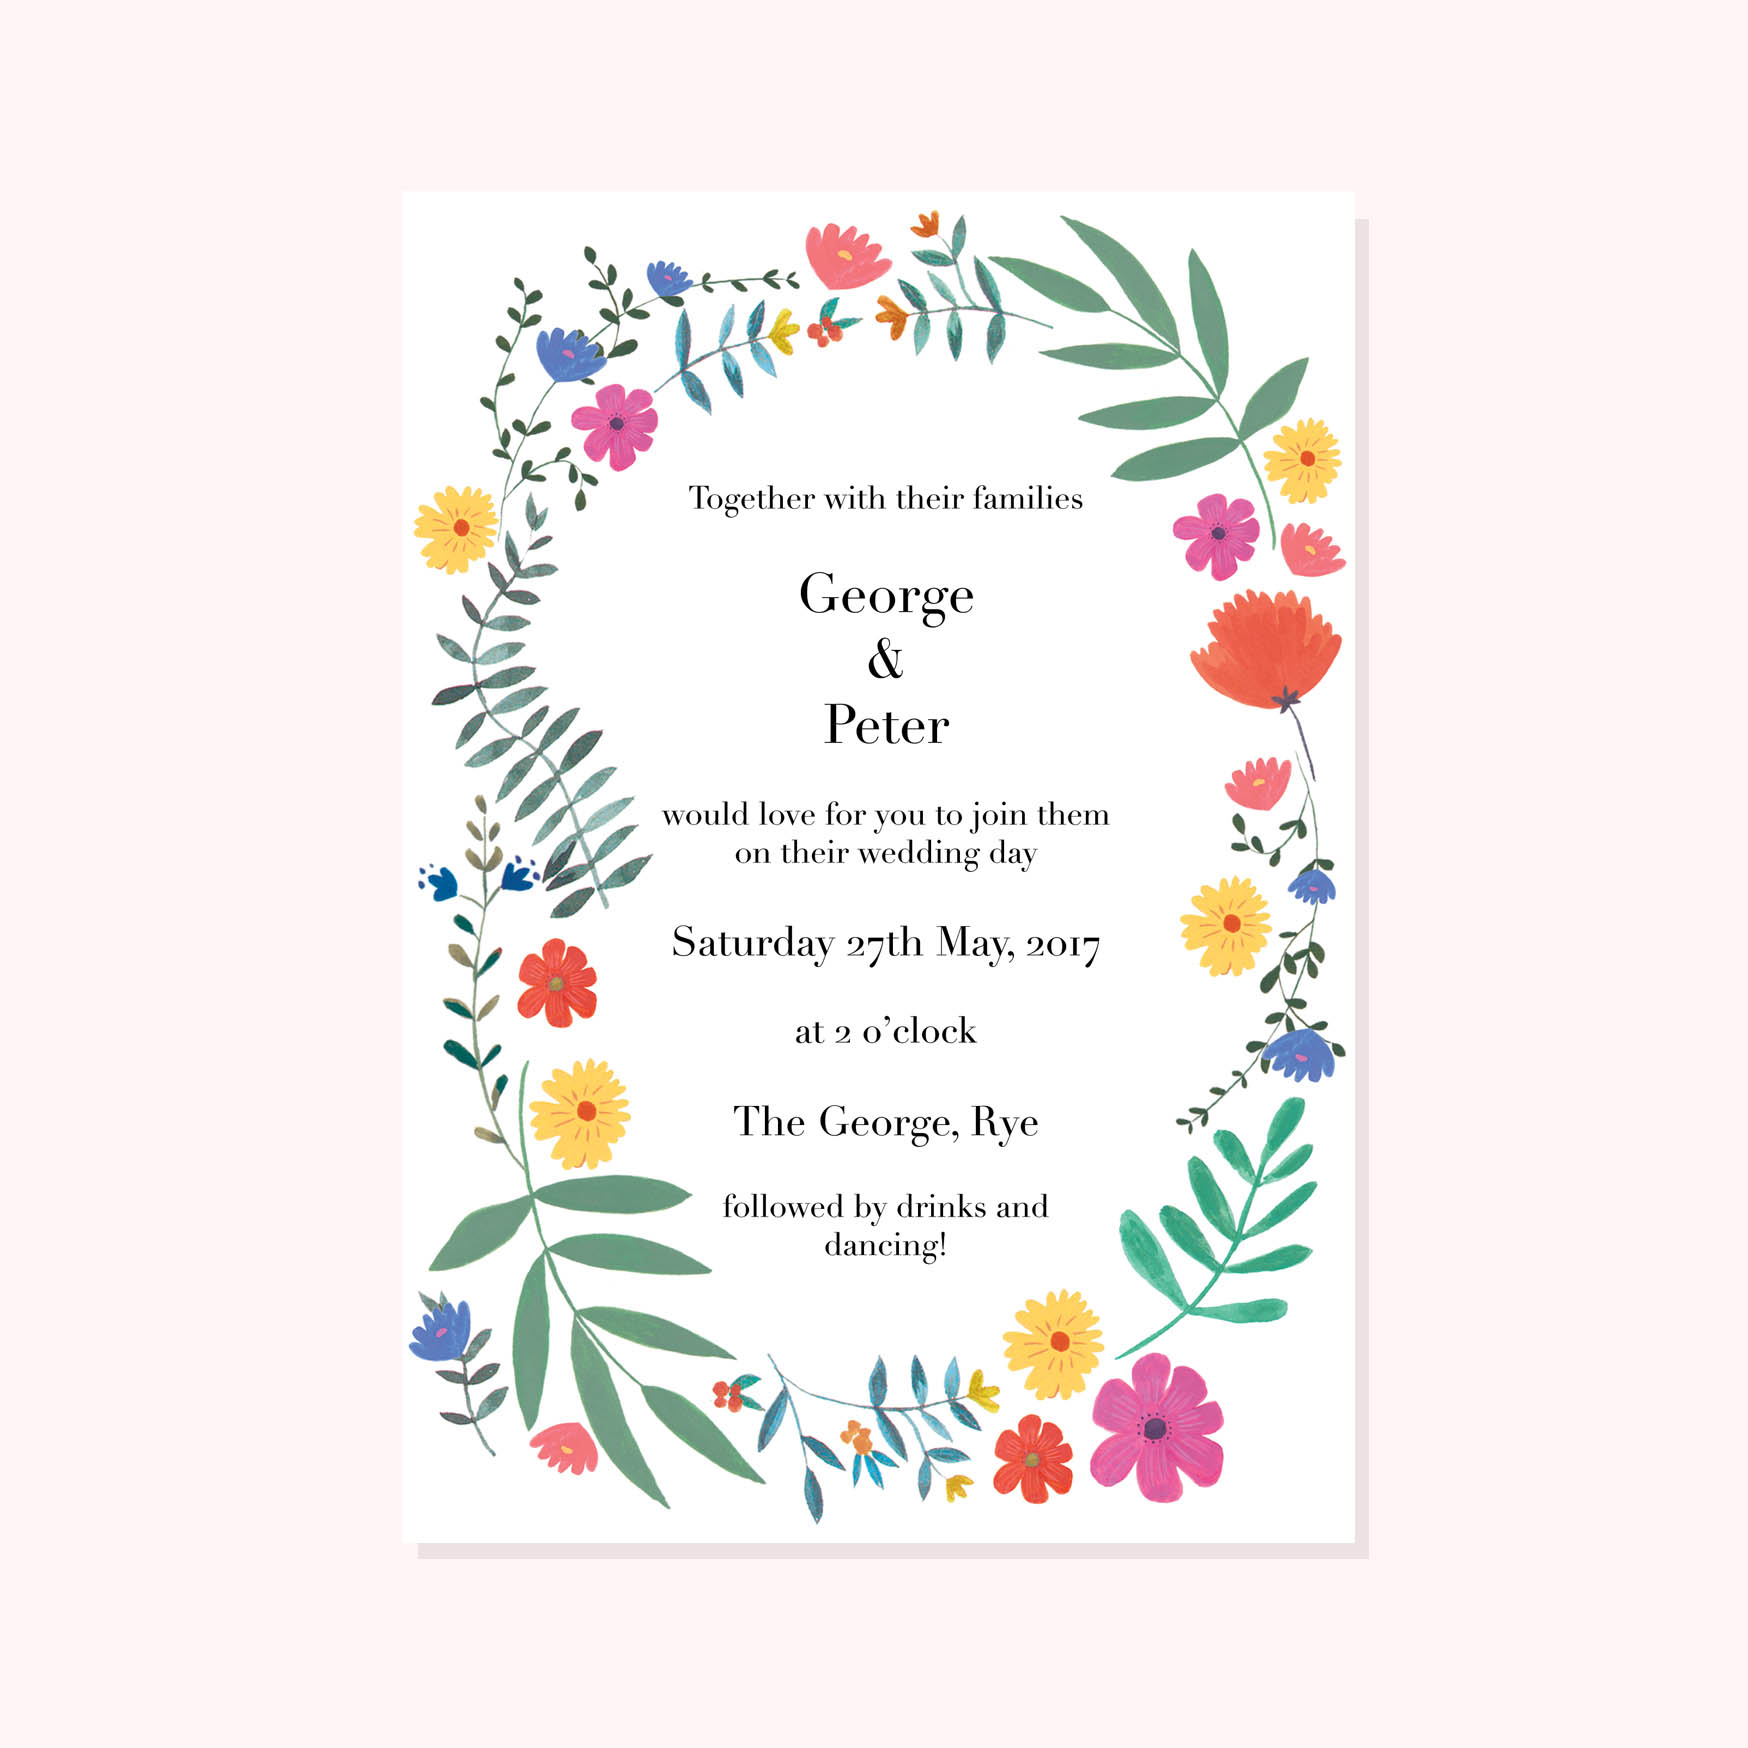 Bright_Wildflowers_Invitation_Front_Peggy_and_Kate.jpg